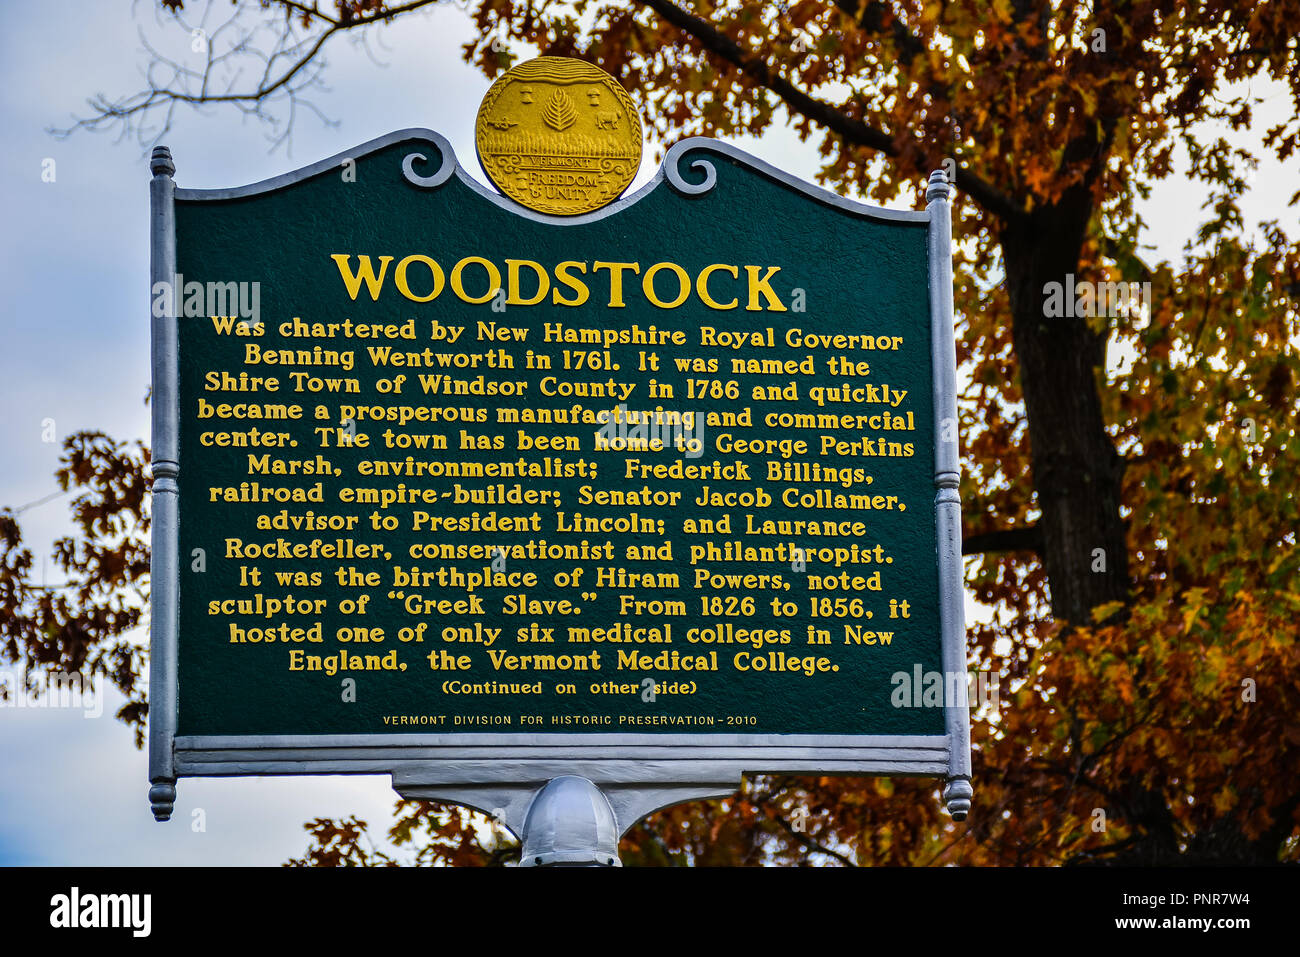 Woodstock, VT - Oct. 25, 2014: Woodstock History Signage - Erected by the Vermont Division for Historic Preservation in 2010. - Stock Image